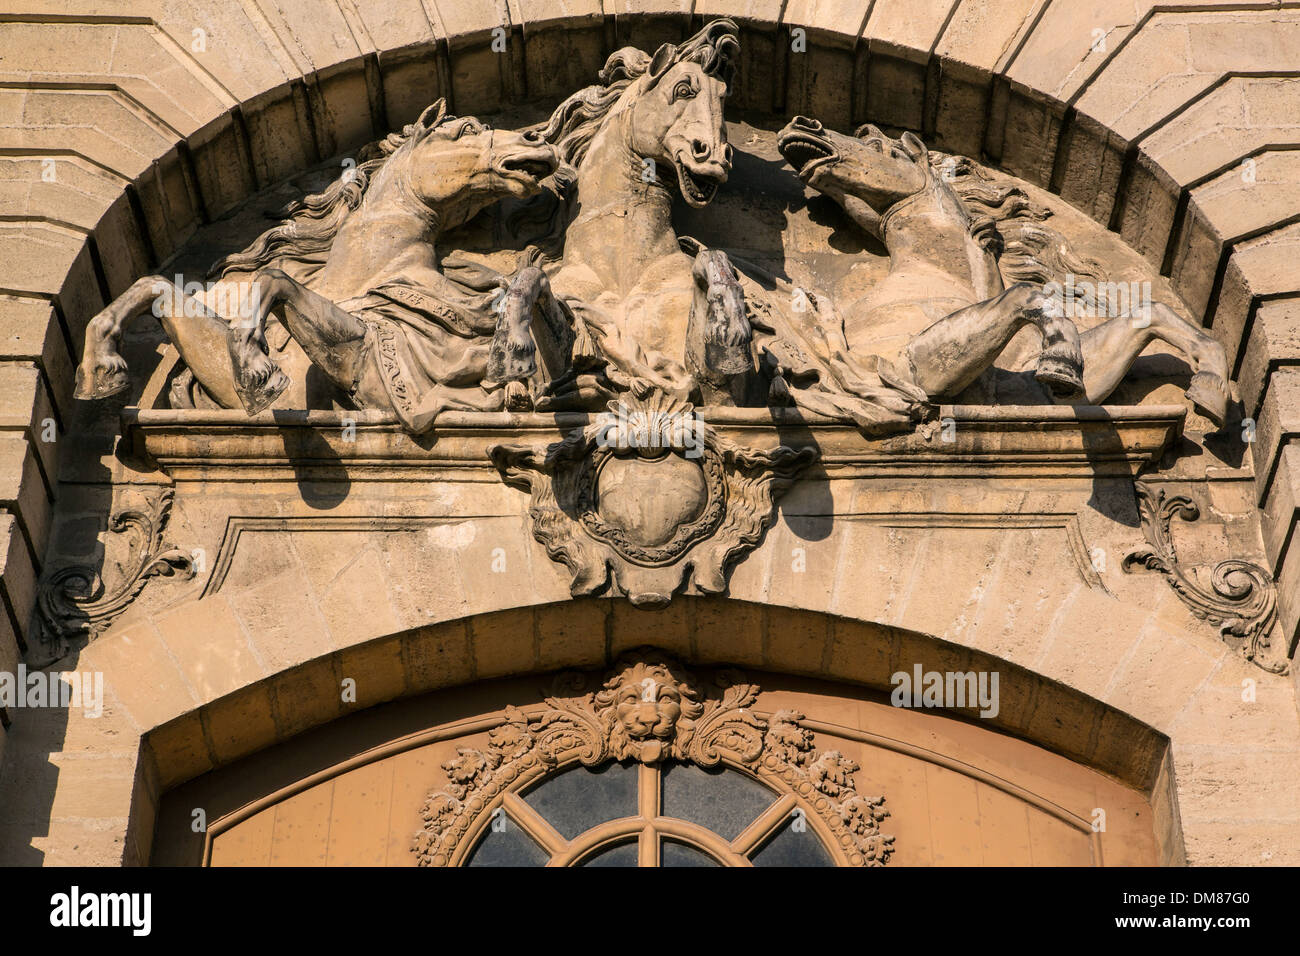 SCULPTURE OF HORSES, HAUT-RELIEF ON THE TYMPANUM OF A DOOR OF THE BIG STABLES CONVERTED INTO A HORSE MUSEUM, ESTATE OF THE CHATEAU DE CHANTILLY, OISE (60), FRANCE - Stock Image